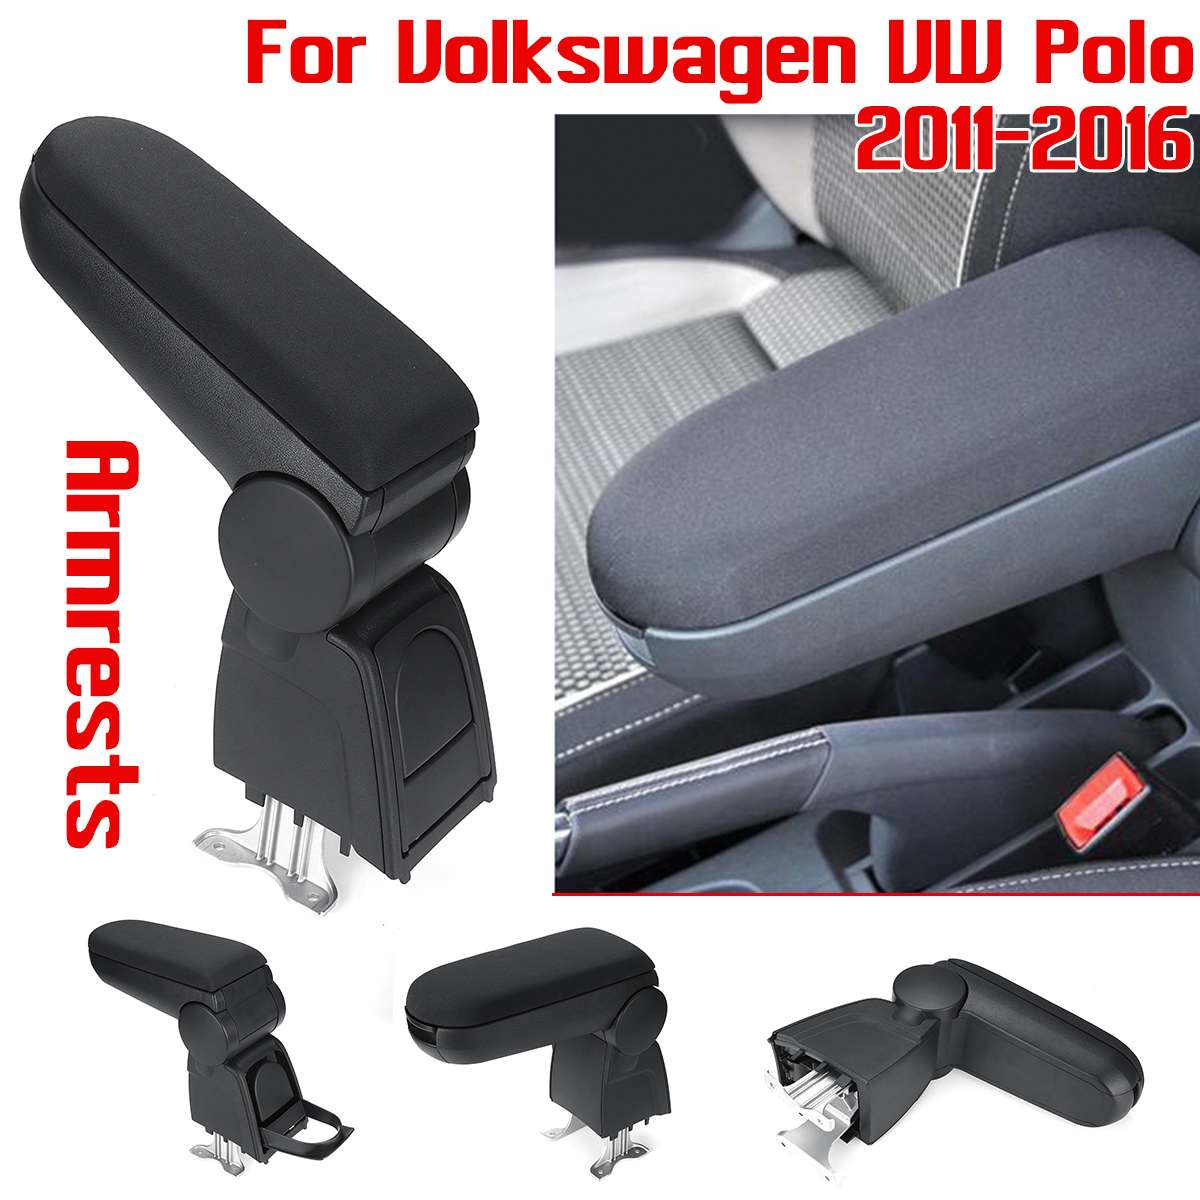 Armrests box with Cup holders leather storage case console interior car-styling accessory For Volkswagen for VW Polo 2011-2017Armrests box with Cup holders leather storage case console interior car-styling accessory For Volkswagen for VW Polo 2011-2017